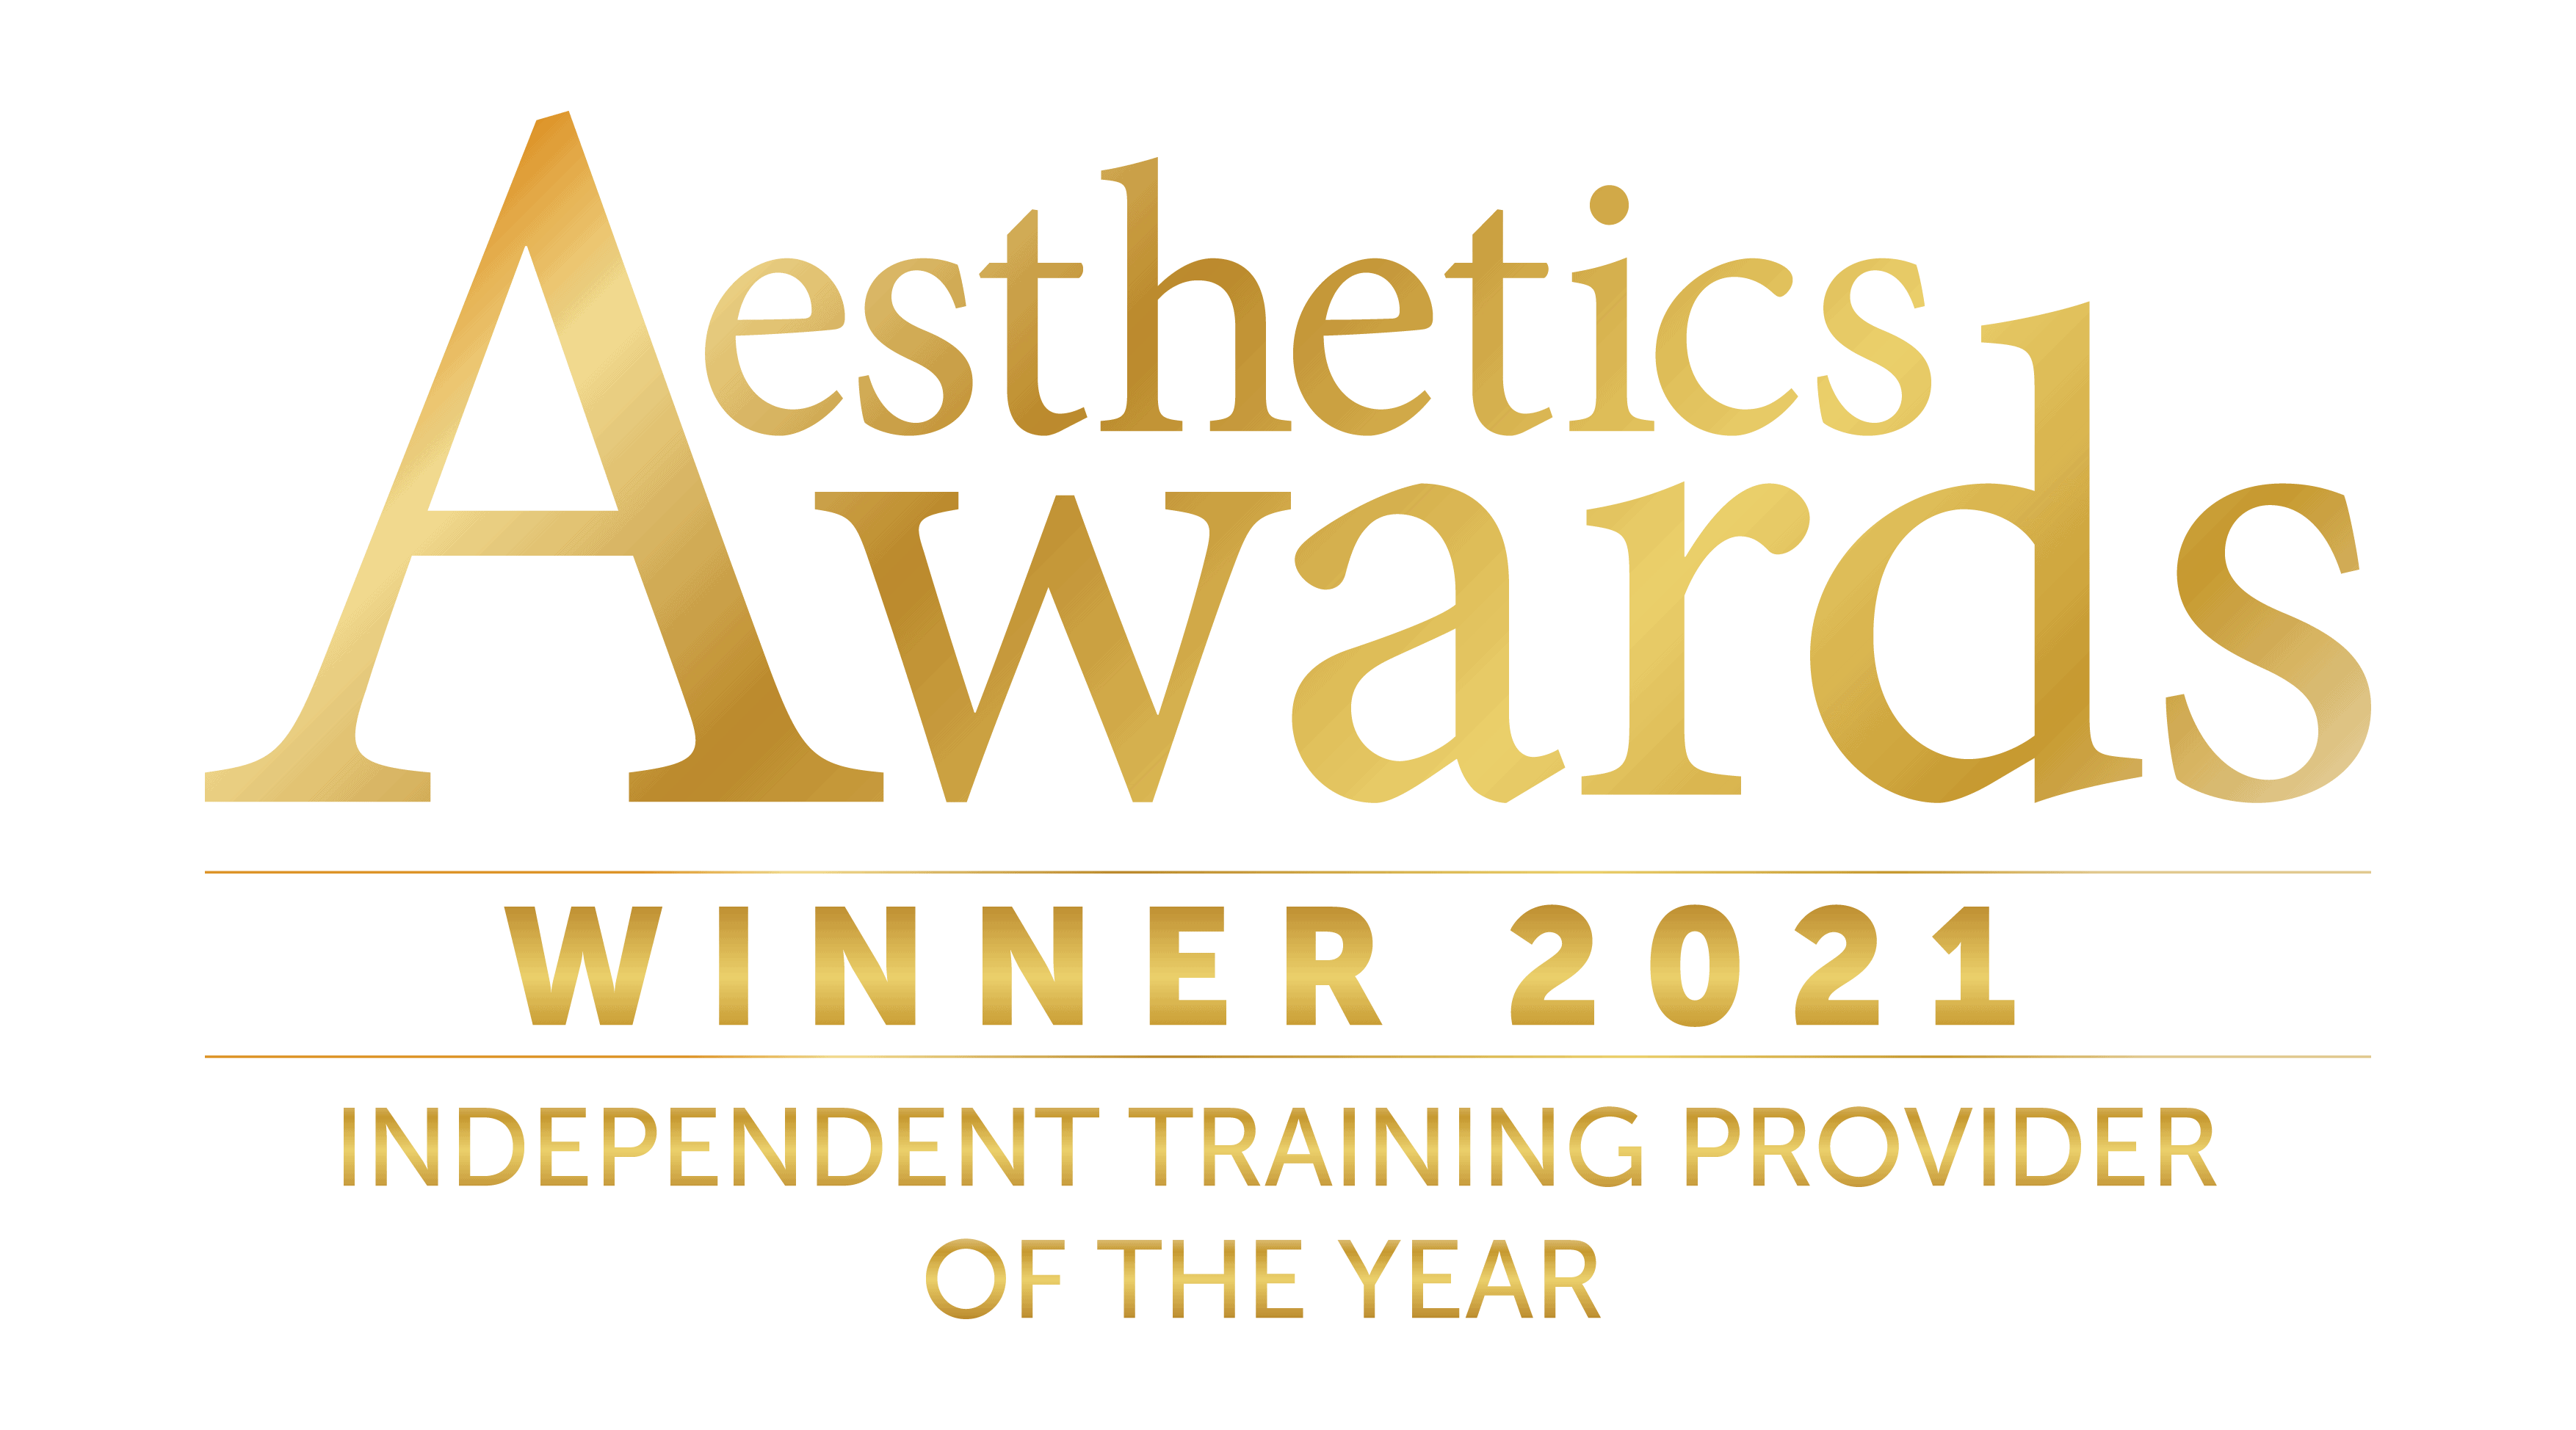 AA2021-28-May-2021 logos_winner_Category__Independent Training Provider of the Year